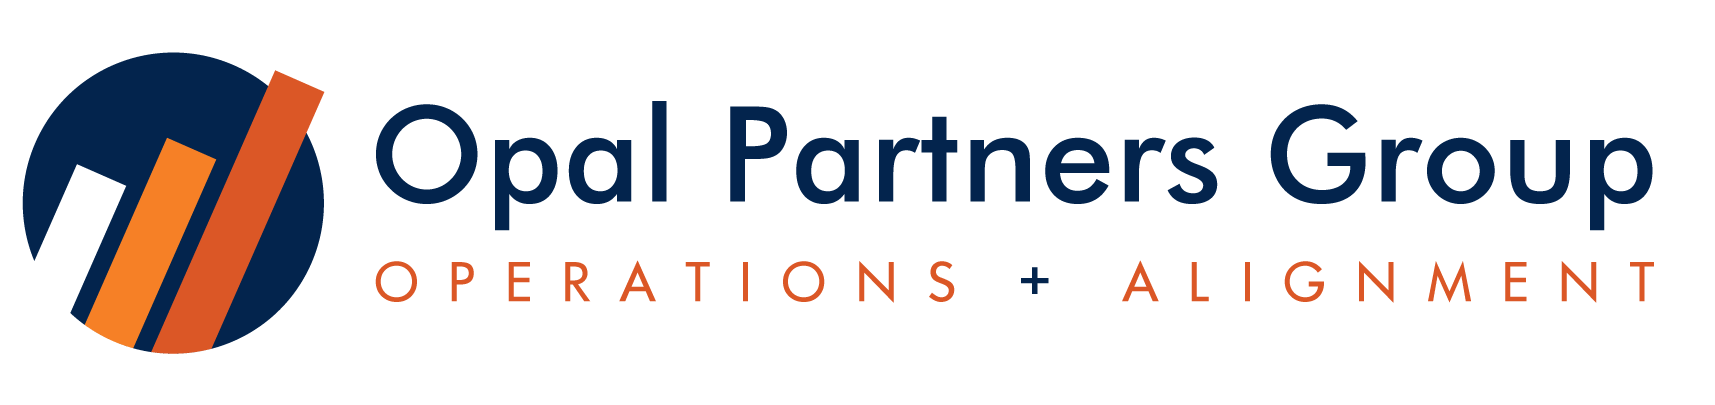 OPAL Partners Group